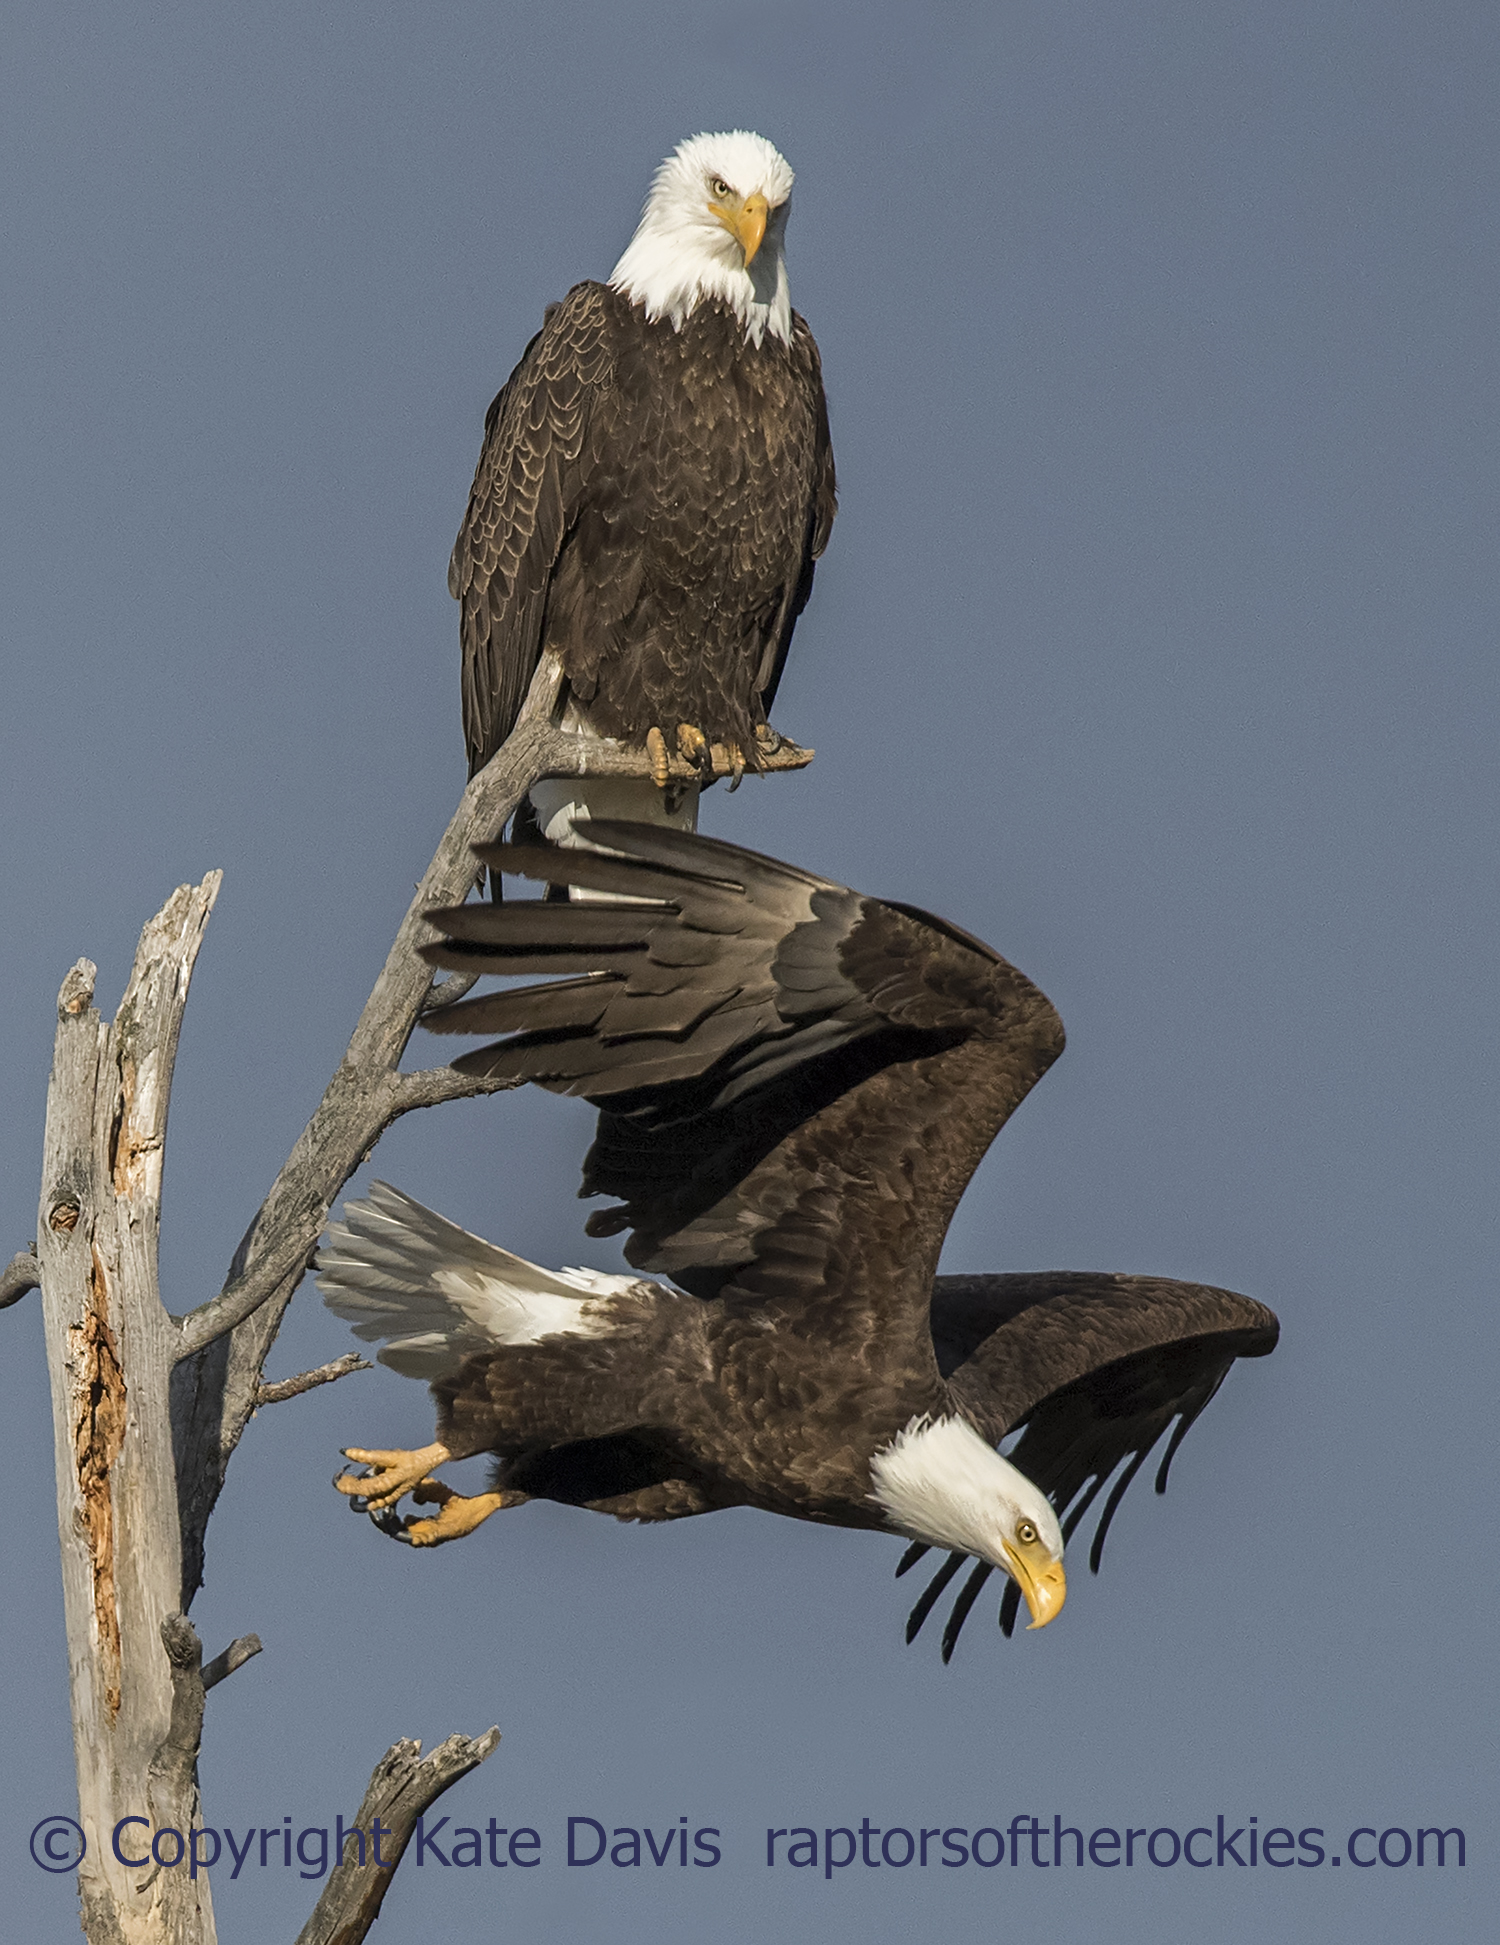 The two Bald Eagles at the nest tree, April 2018. They didn't breed this year but were often perched in that tree.